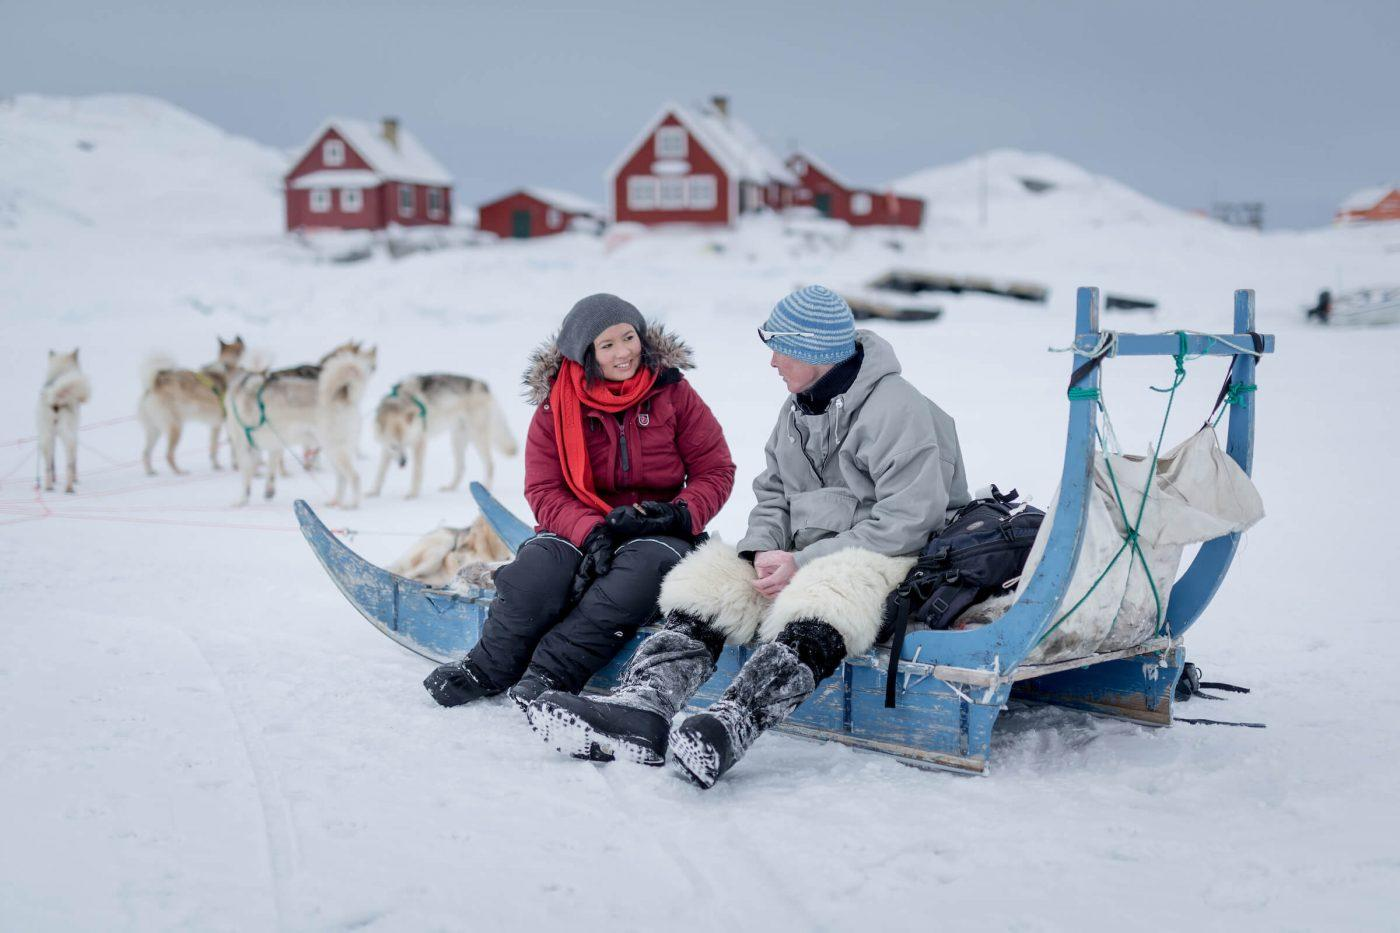 A coffee break in Oqaatsut while on a dog sledding trip in the Ilulissat area in Greenland. Photo by Mads Pihl